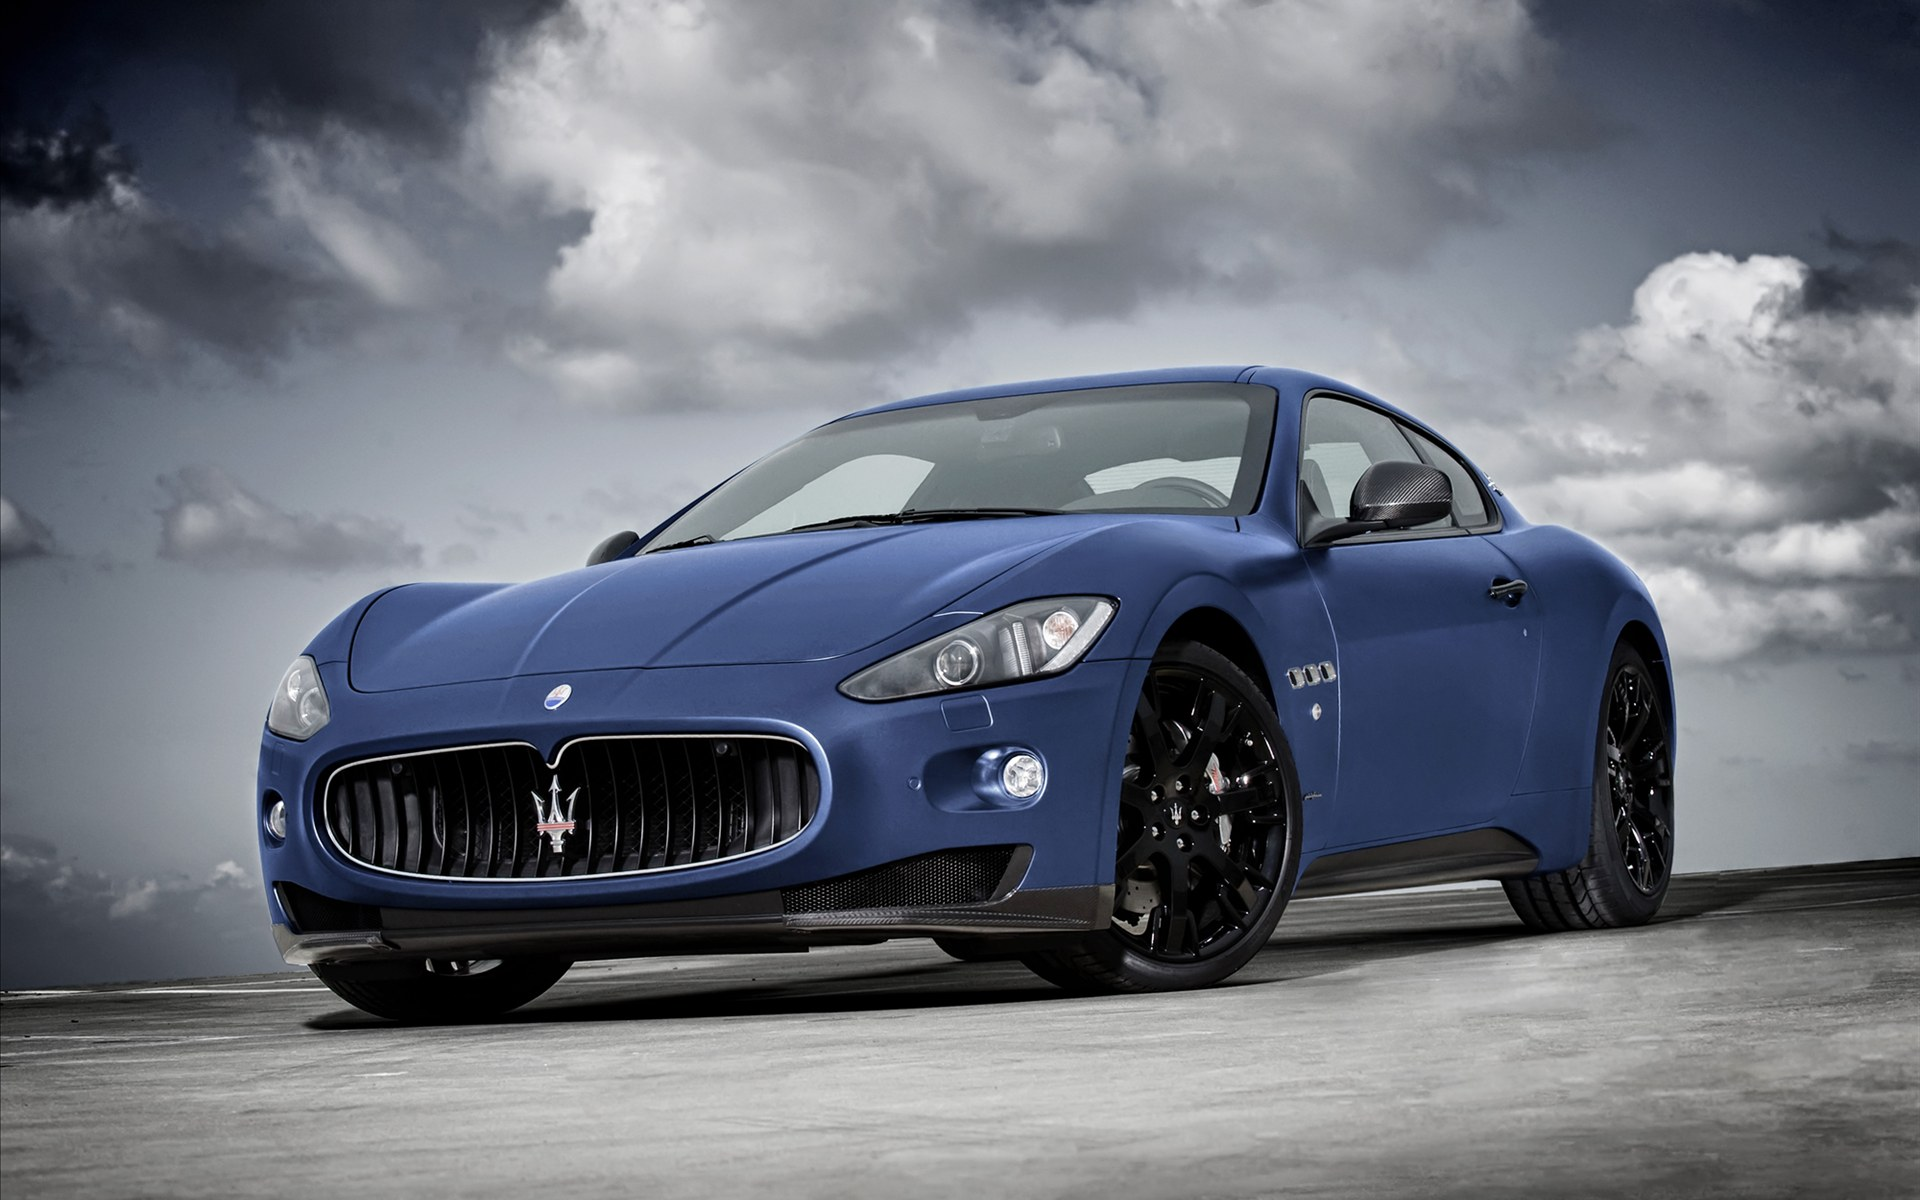 Interesting Maserati HDQ Images Collection: 39917102, 1920x1200 Px